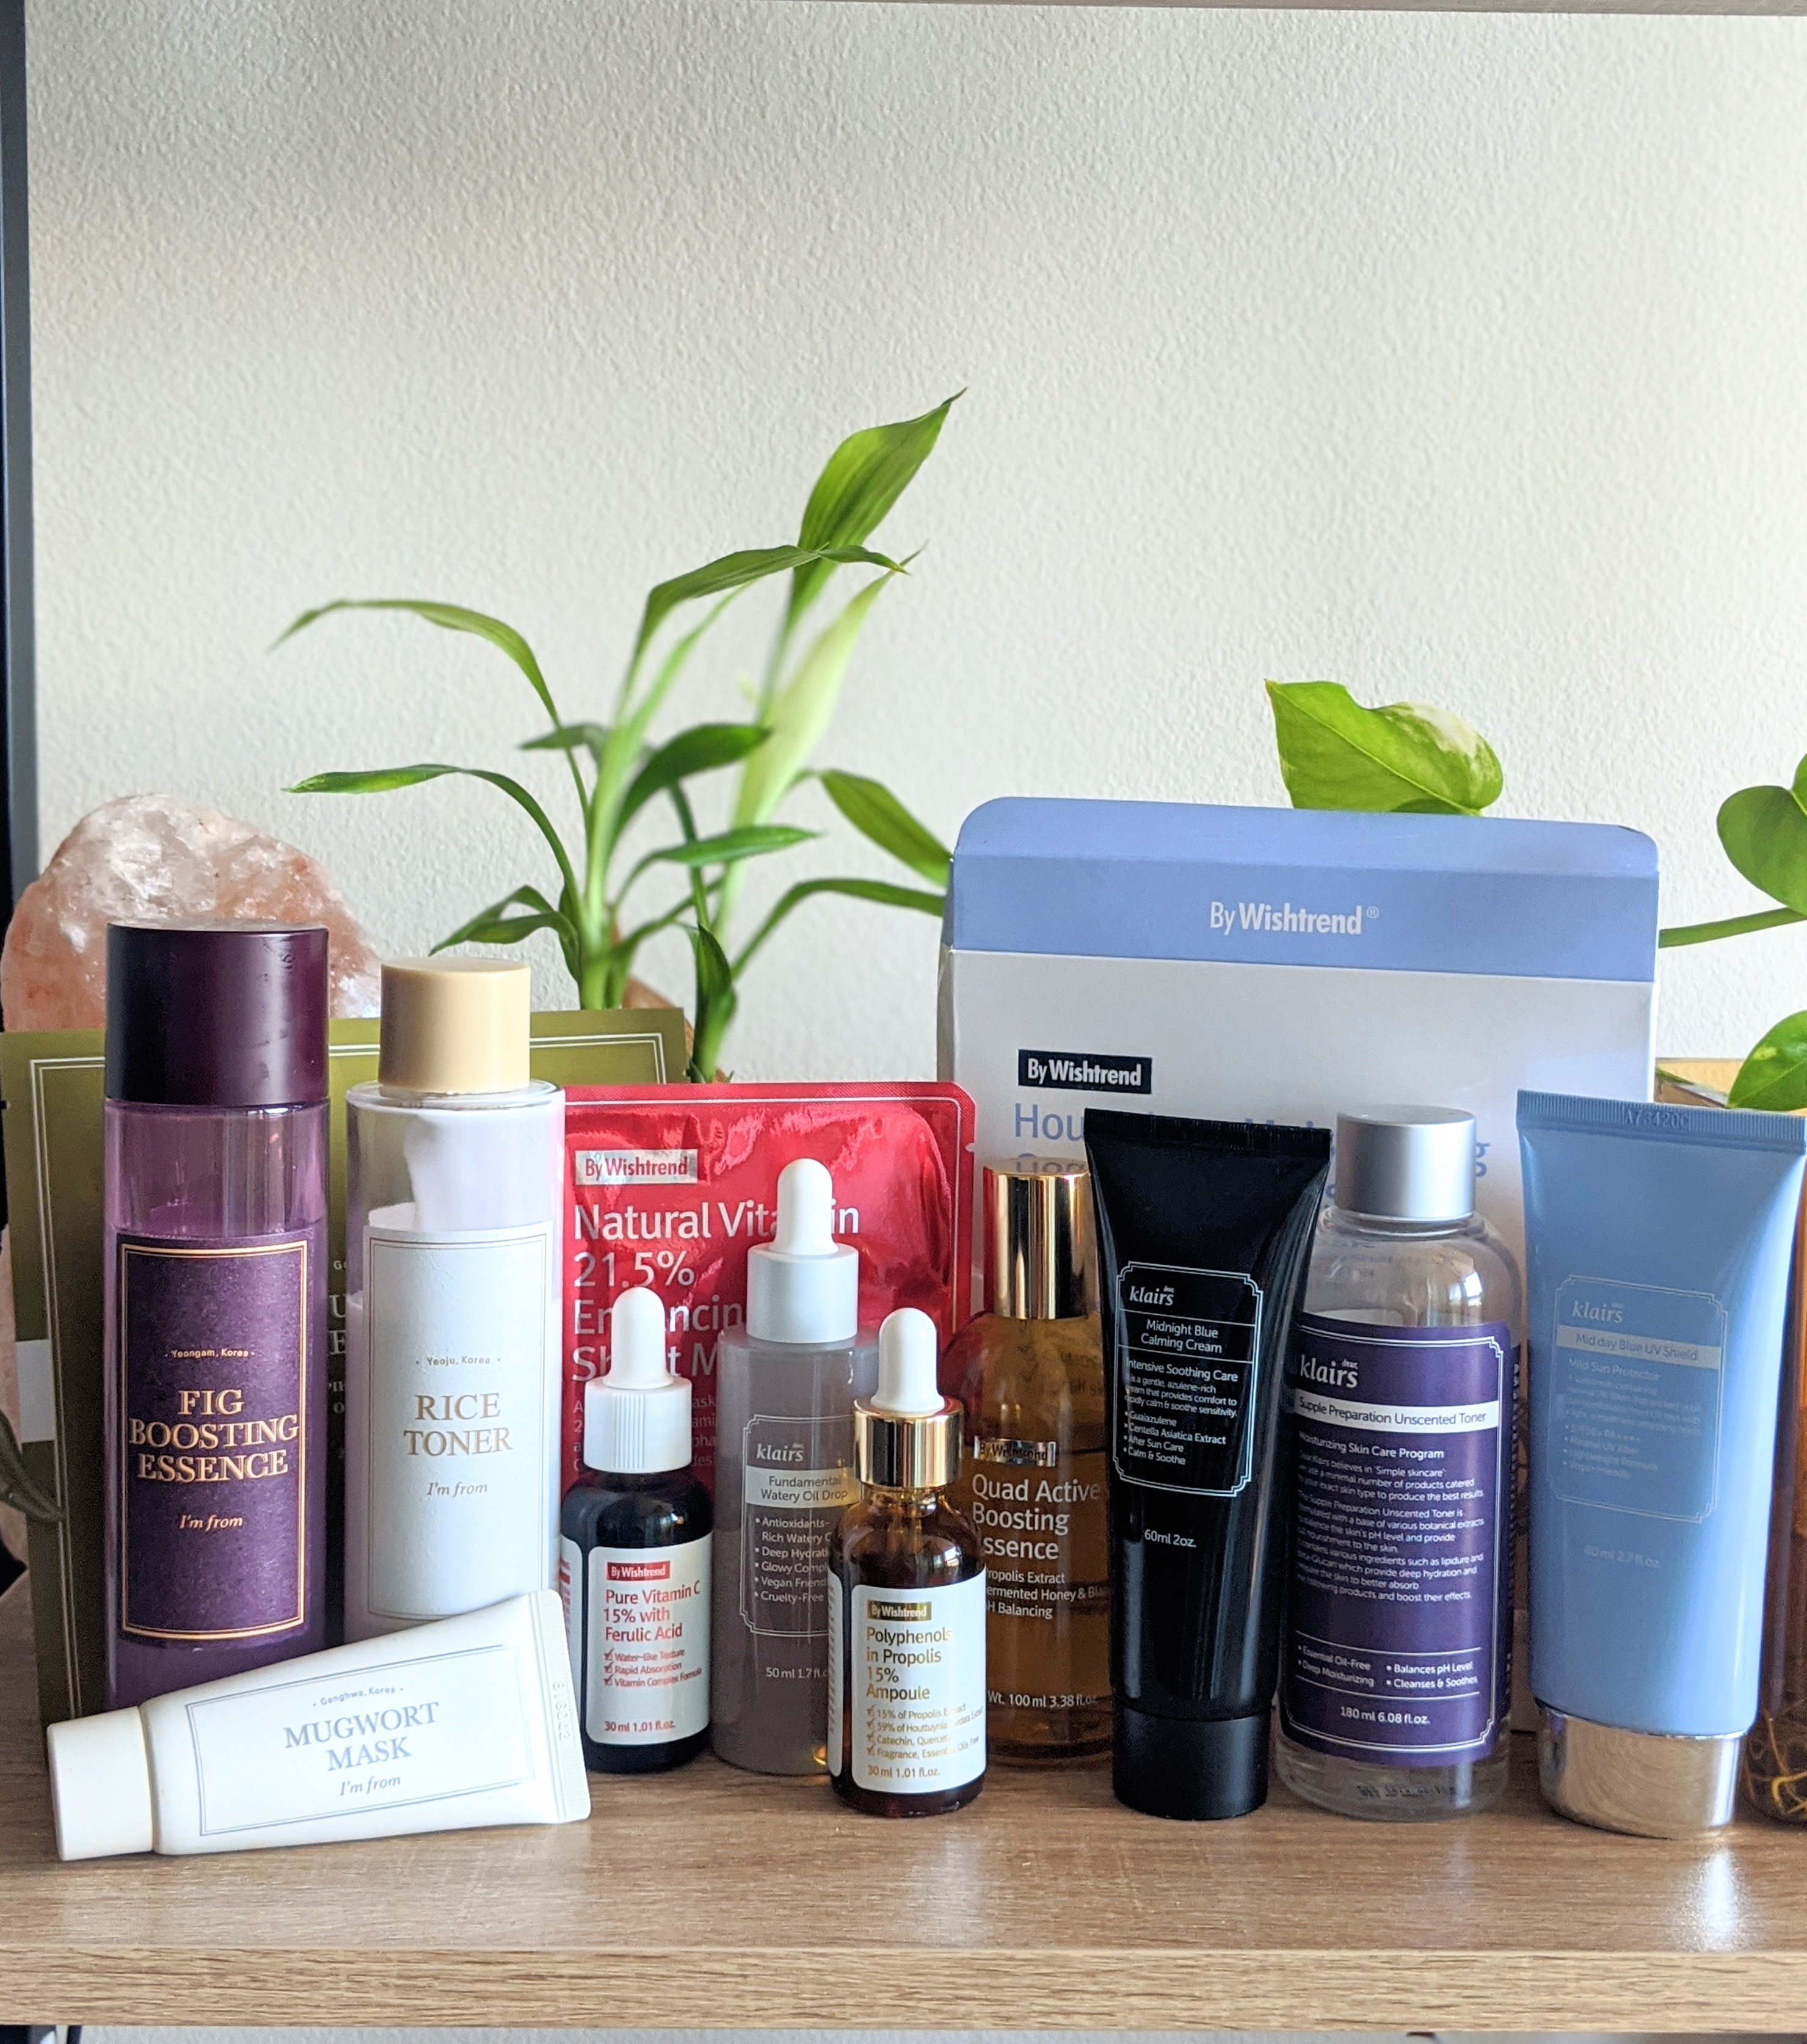 A collection of Korean Skincare offered by Wishtrend, an online retailer.